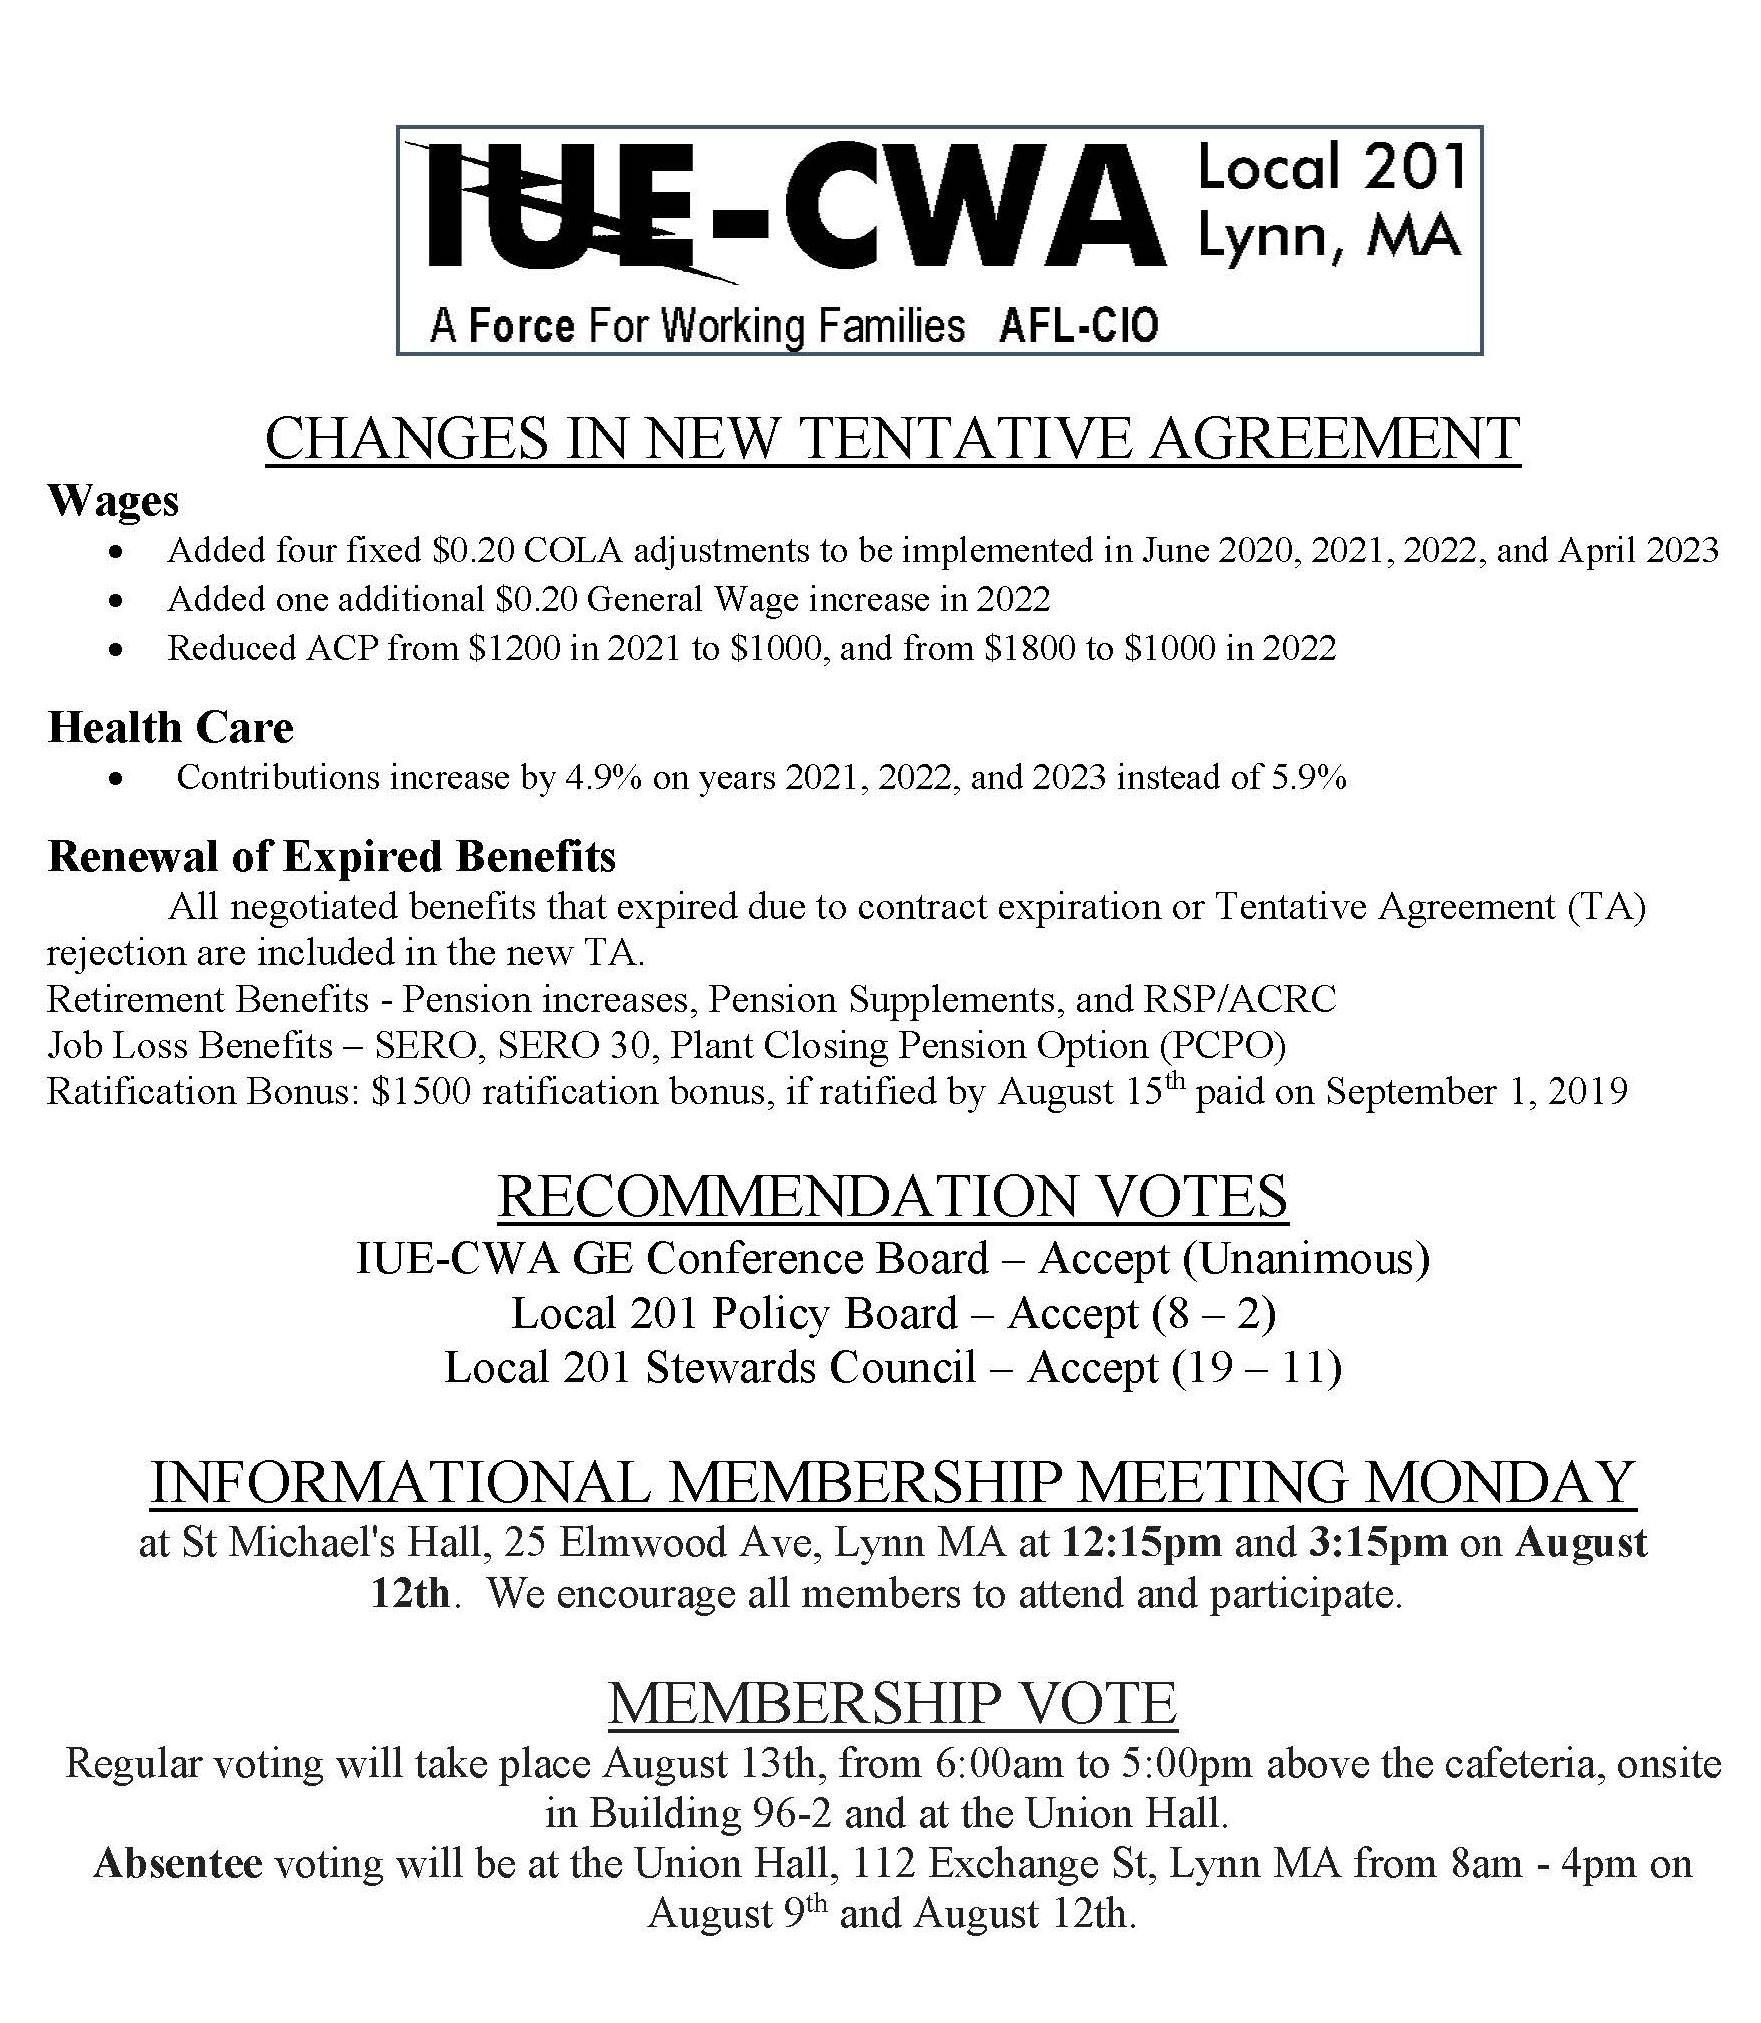 Recommendation Vote Results, Info, and TA Changes Flyer